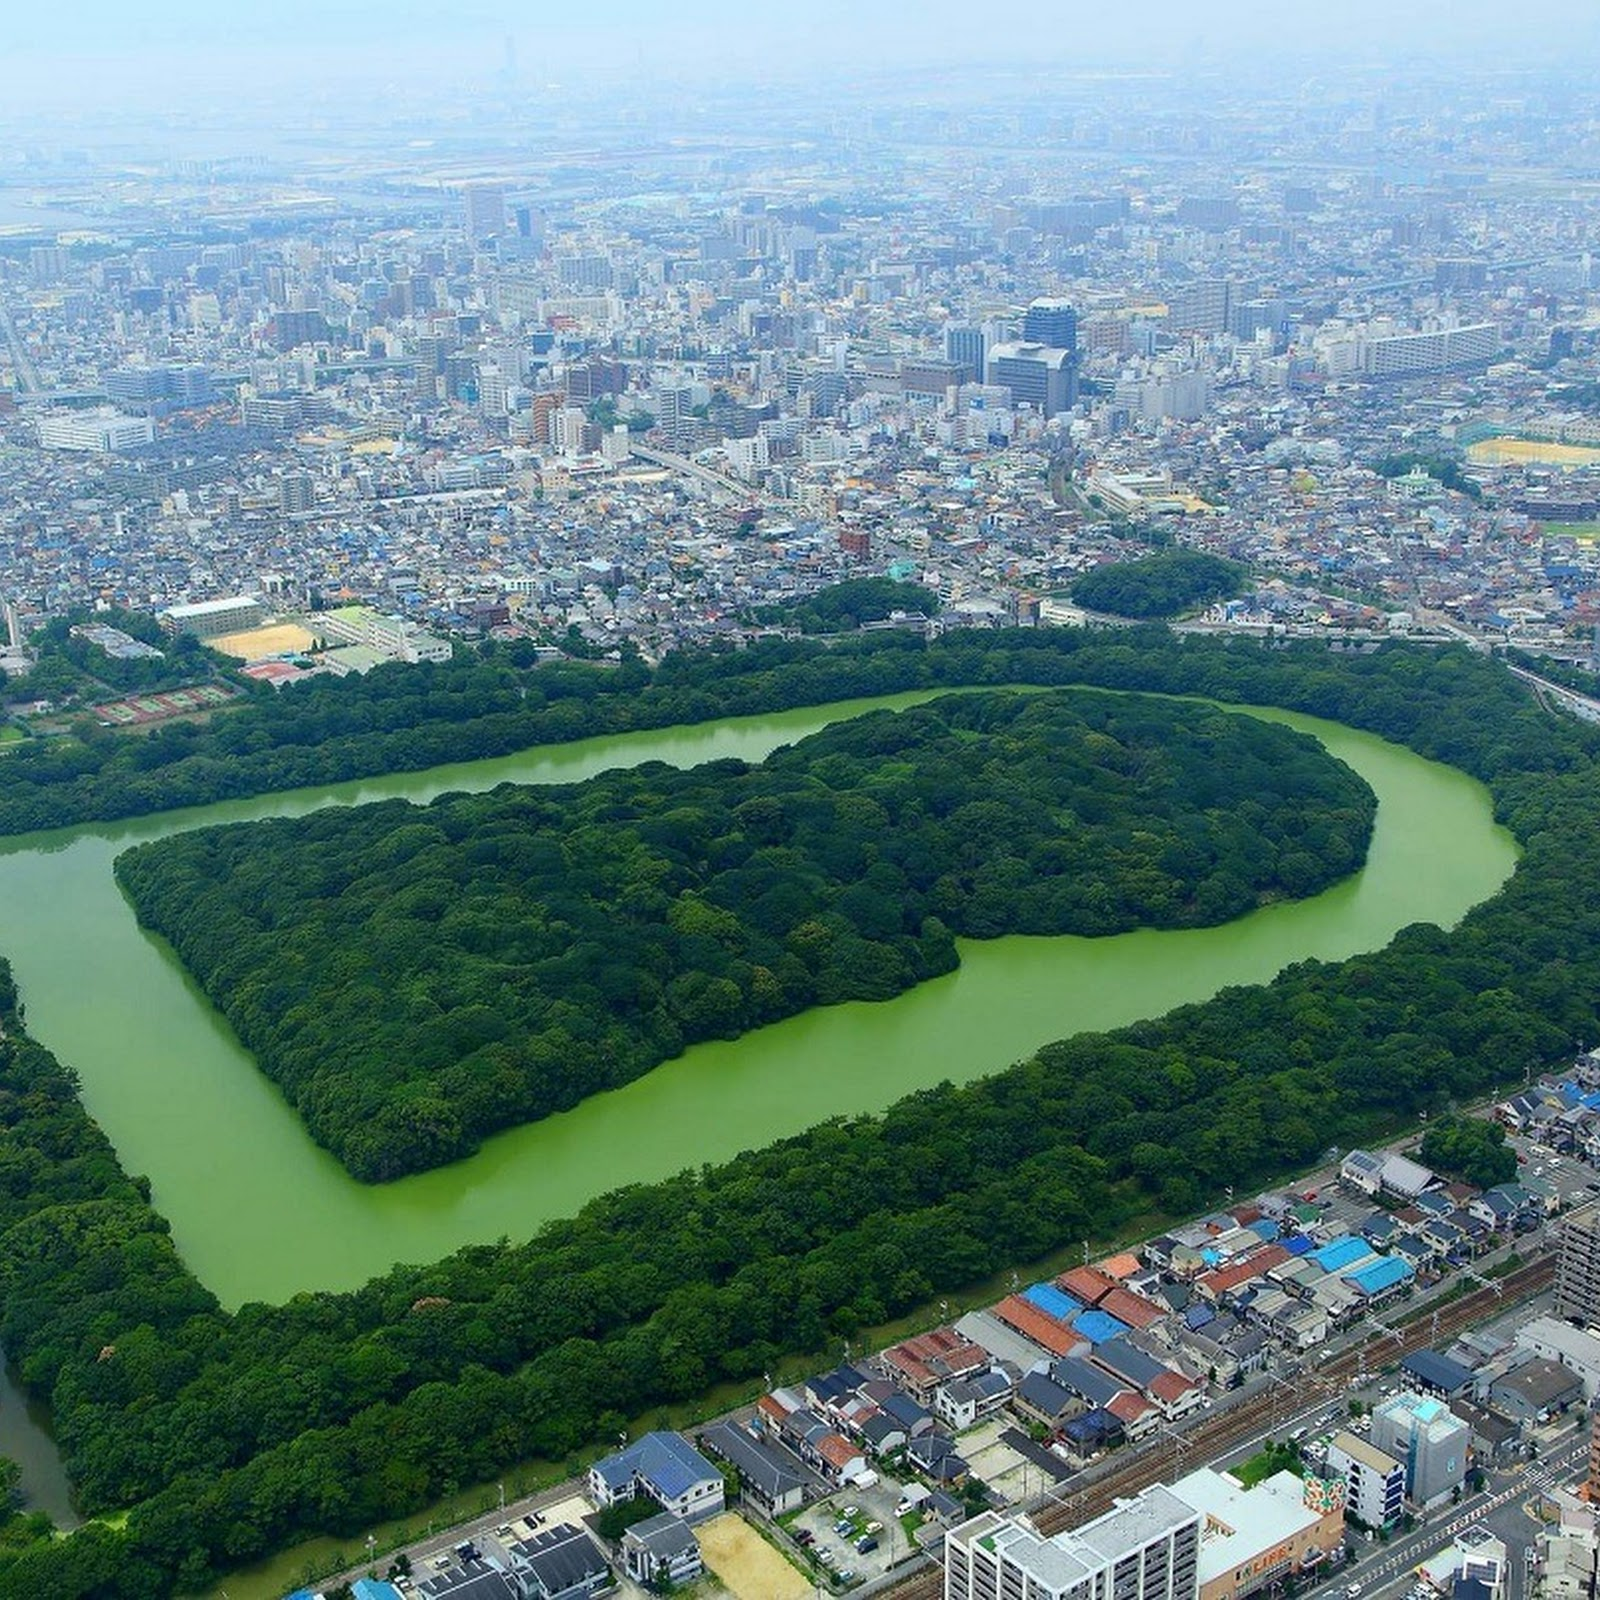 Kofun: Japan's Keyhole-Shaped Burial Mounds